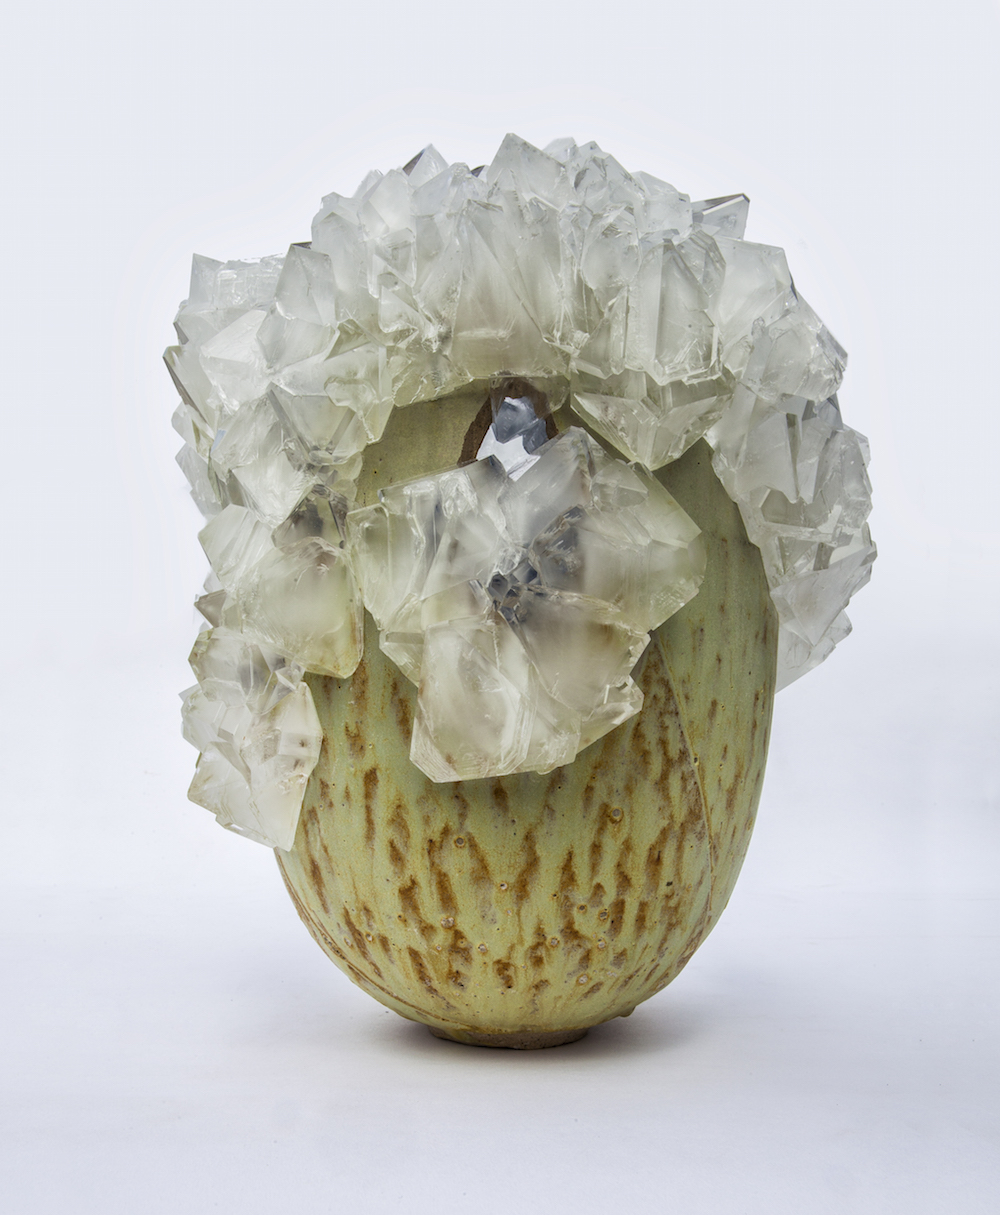 Sculpture Lukas Wegwerth crystallization, Gallery Fumi